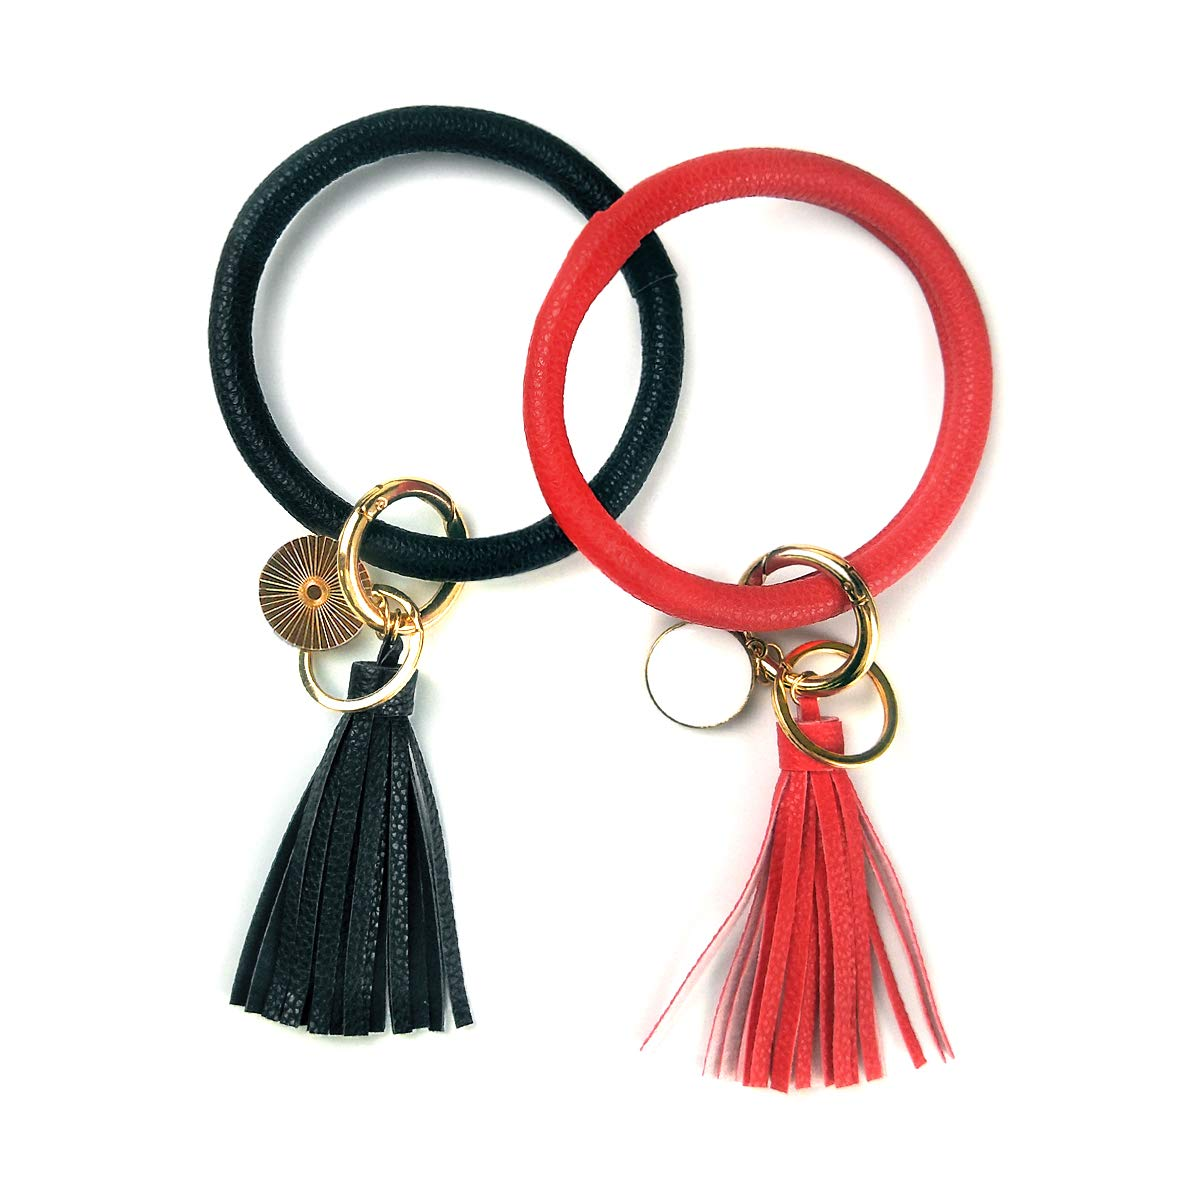 Leather Bracelet Key Ring Bangle Keyring, Tassel Ring Circle Key Ring Keychain Wristlet for Women Girls - Free Your Hands (Black + Red) by M&C Music Color